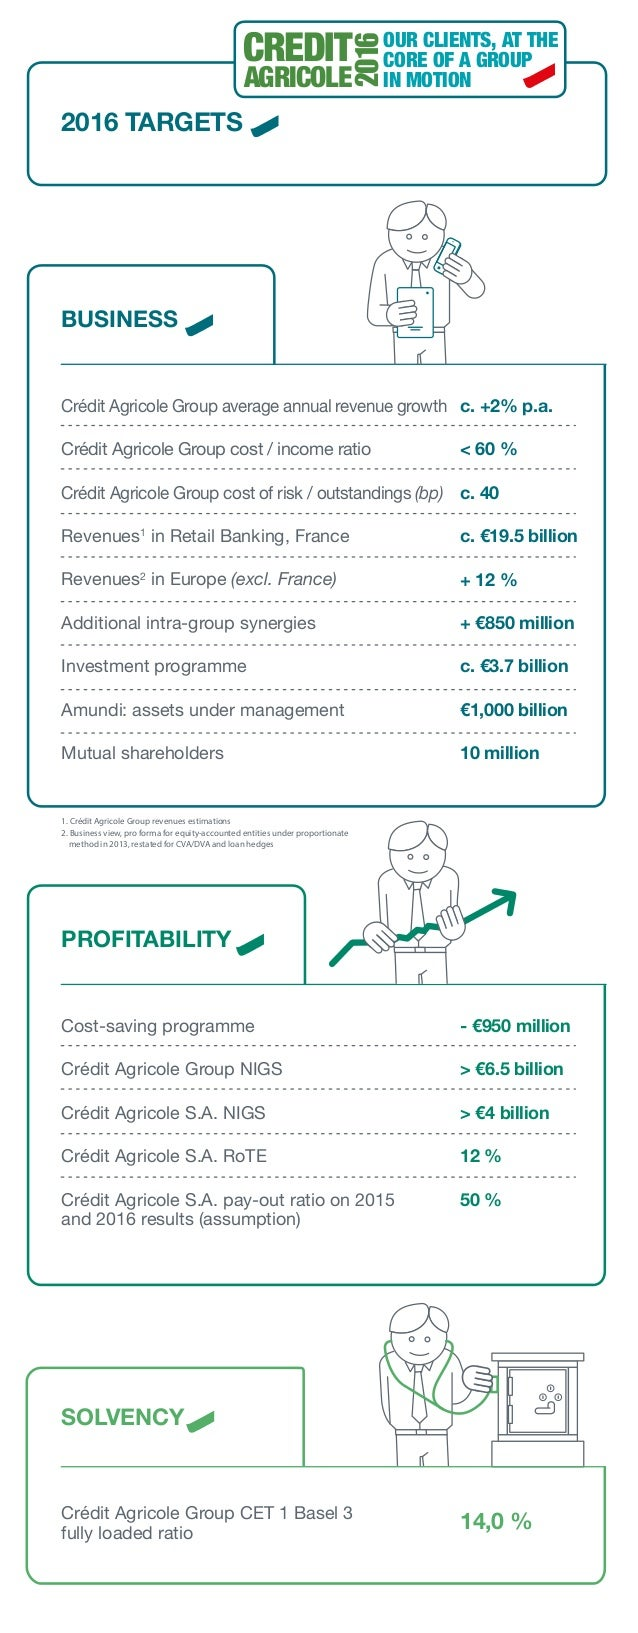 Crédit Agricole 2016 - Financial objectives of Crédit Agricole Group and Crédit Agricole SA